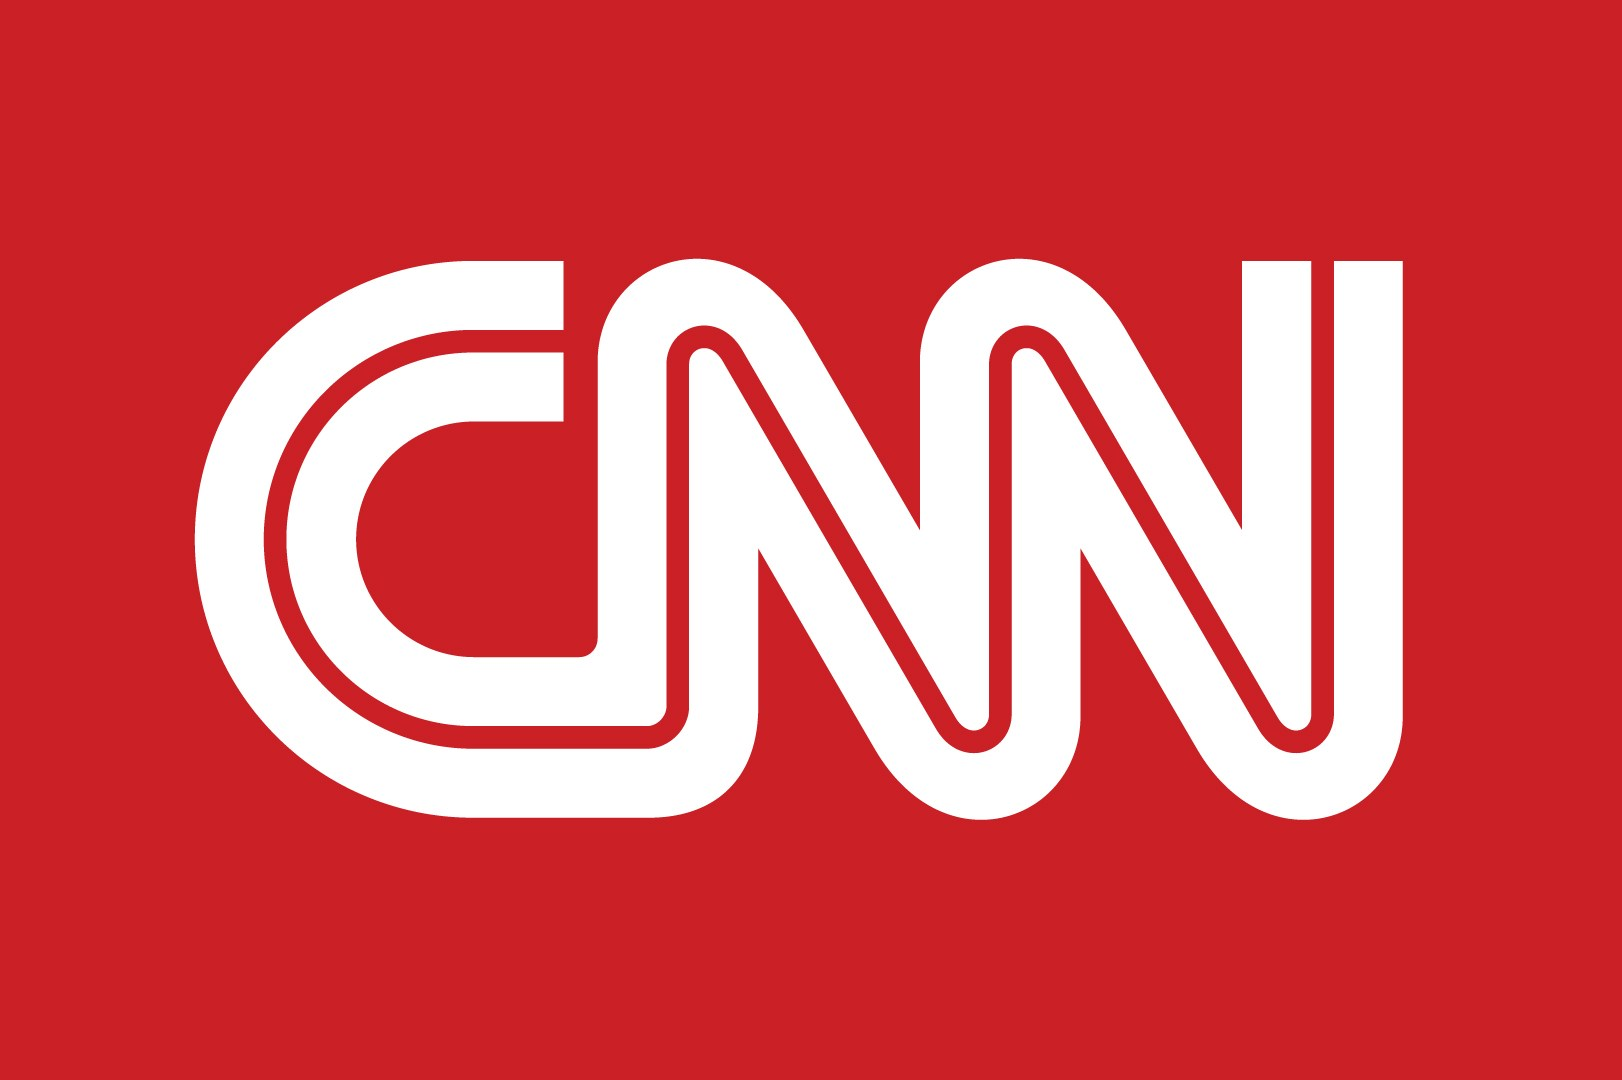 CNN Experiences Huge Year-To-Year Growth In November, Up 42% In Primetime Viewership